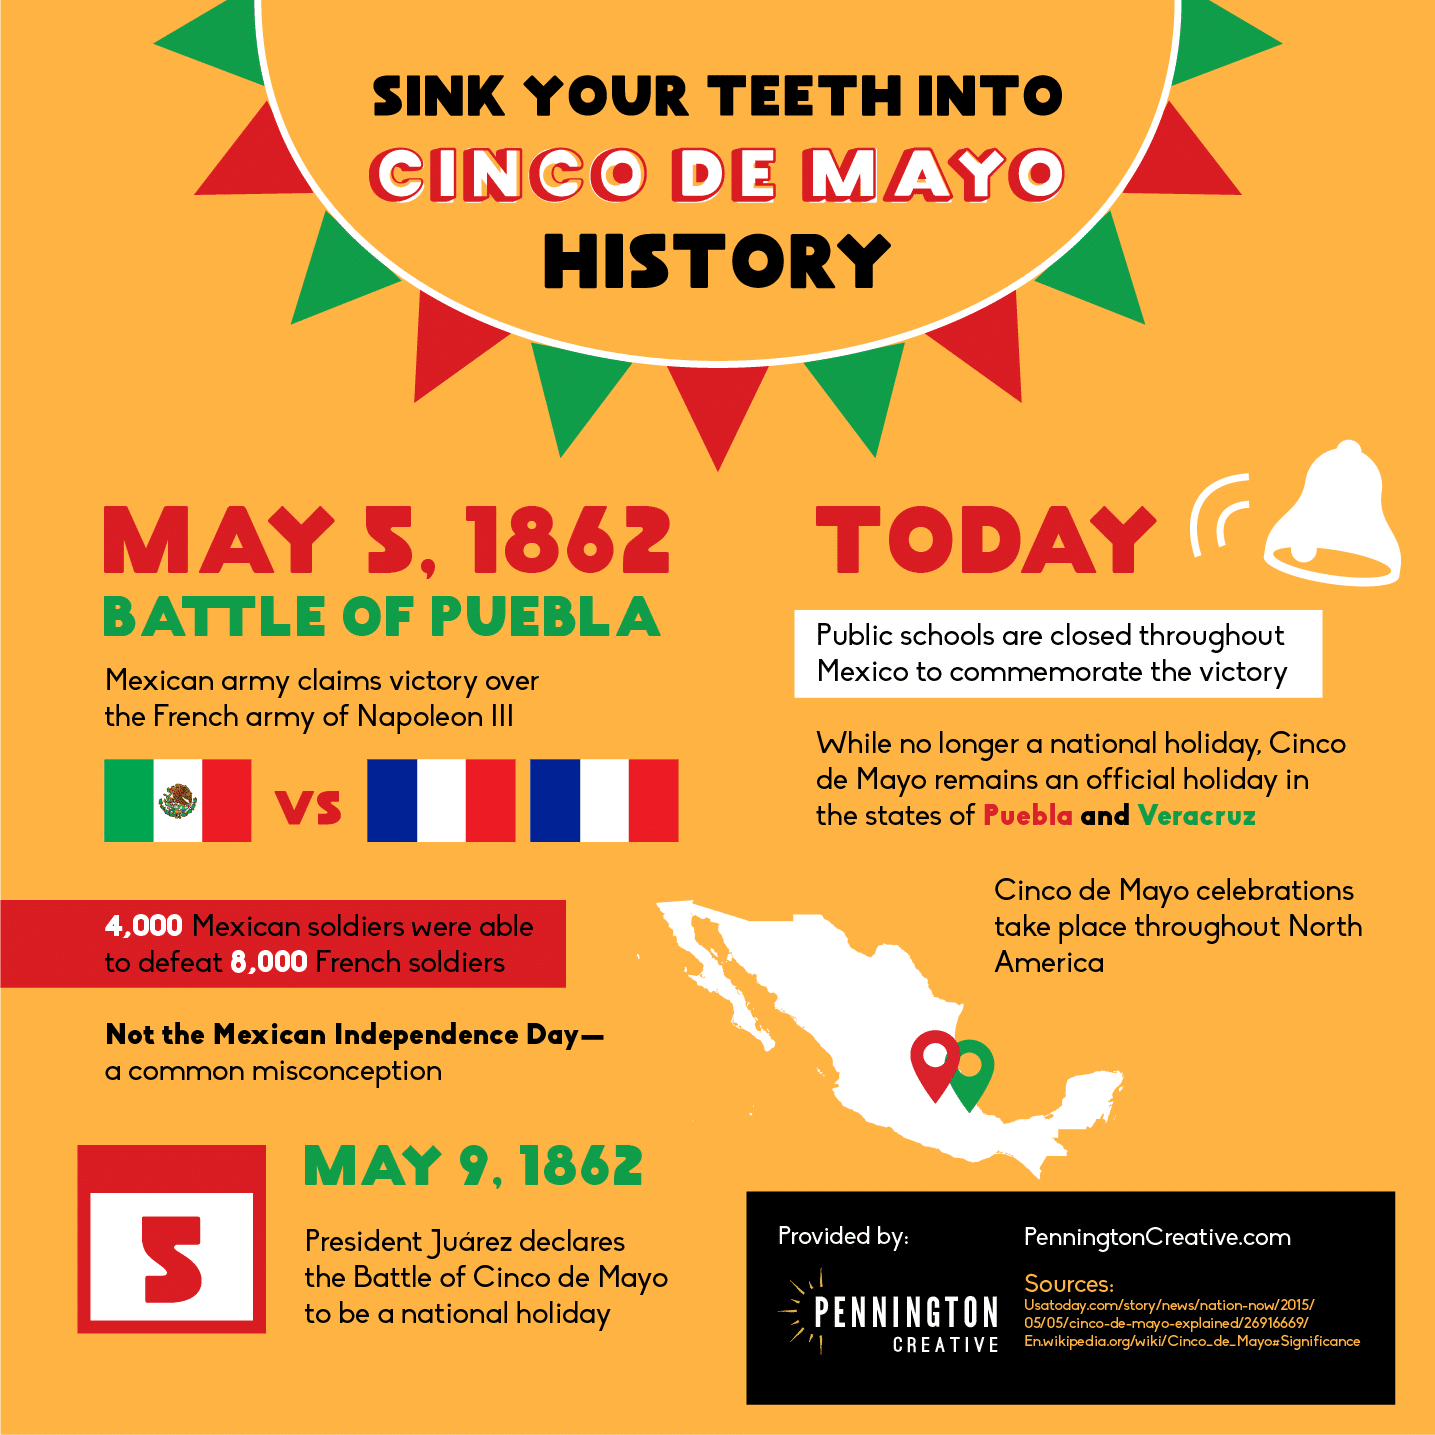 Infographic about the history of Cinco de Mayo.